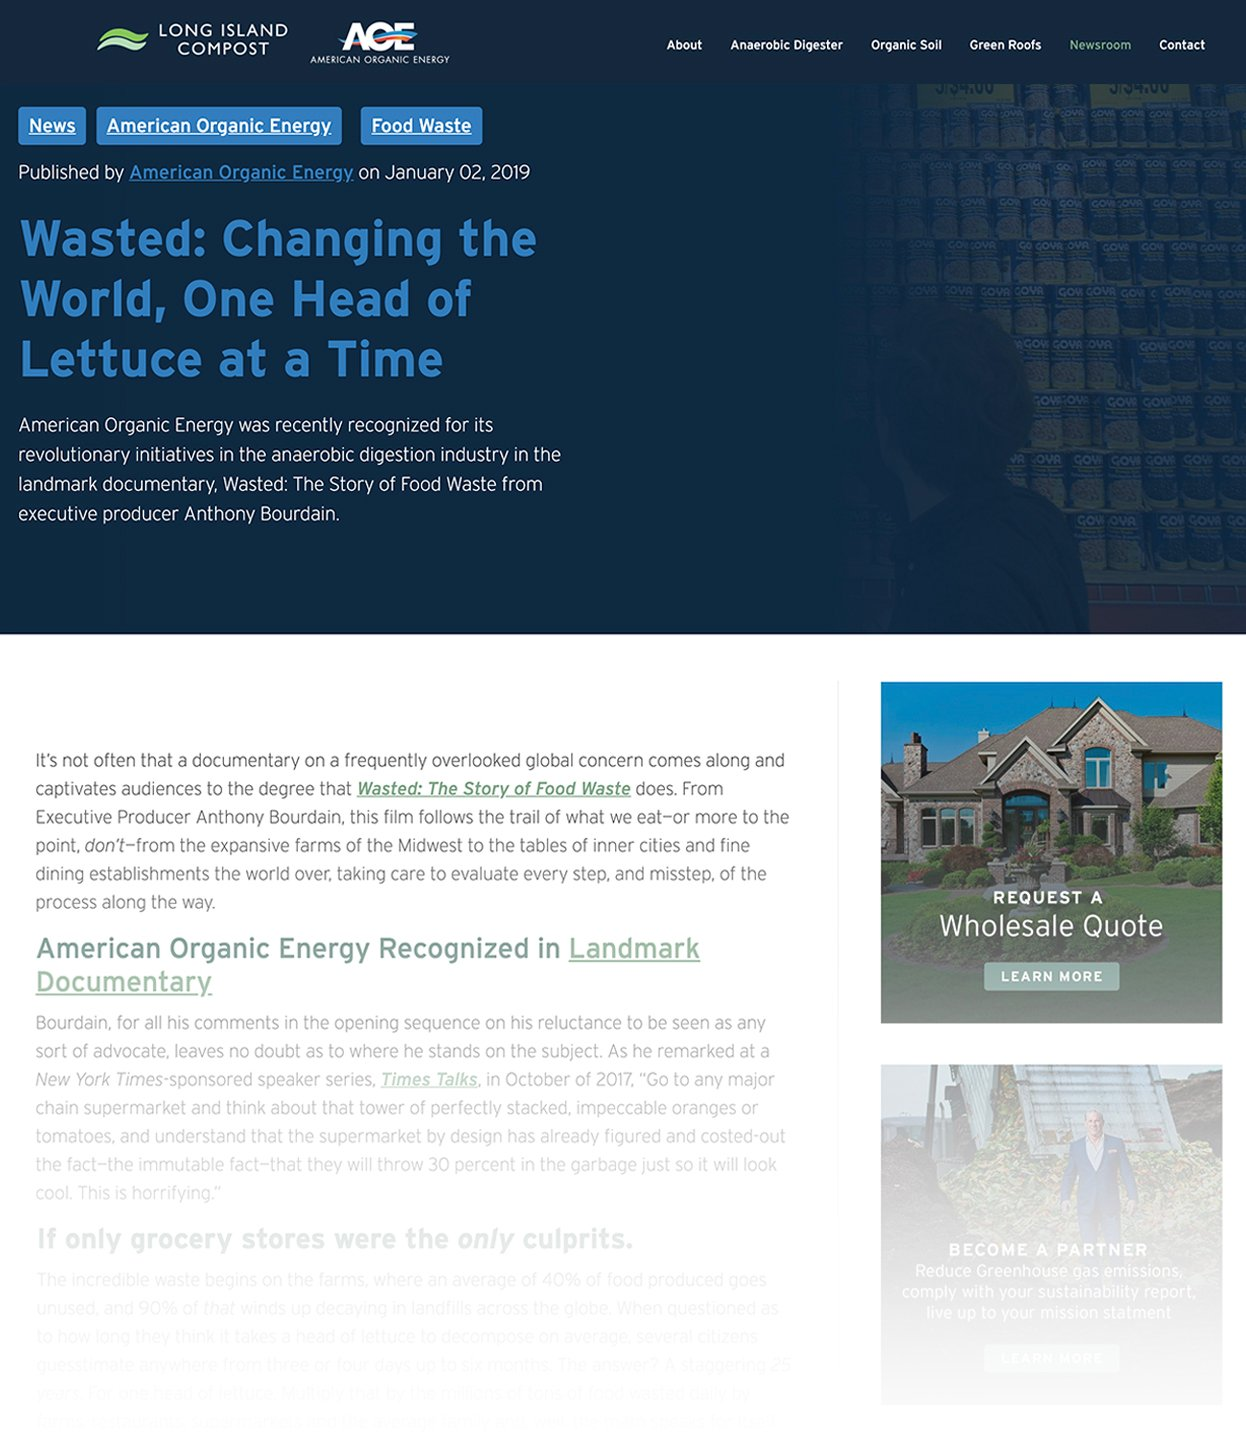 Screenshot of American Organic Energy Blog Called Wasted-Changing the World, One Head of Lettuce at a Time